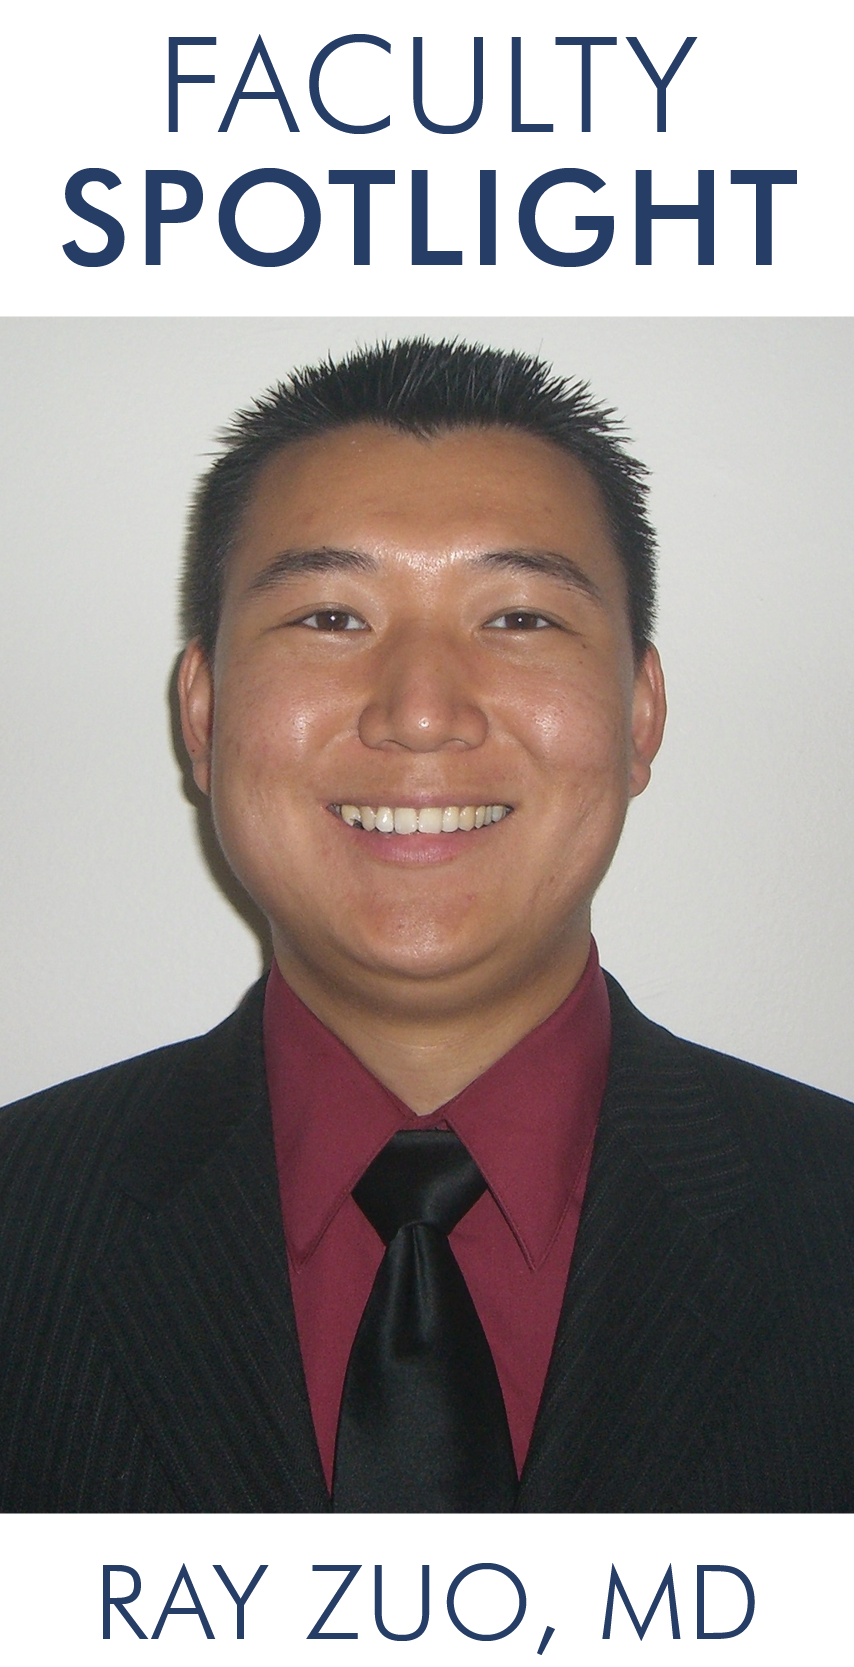 Faculty Spotlight - Ray Zuo, MD